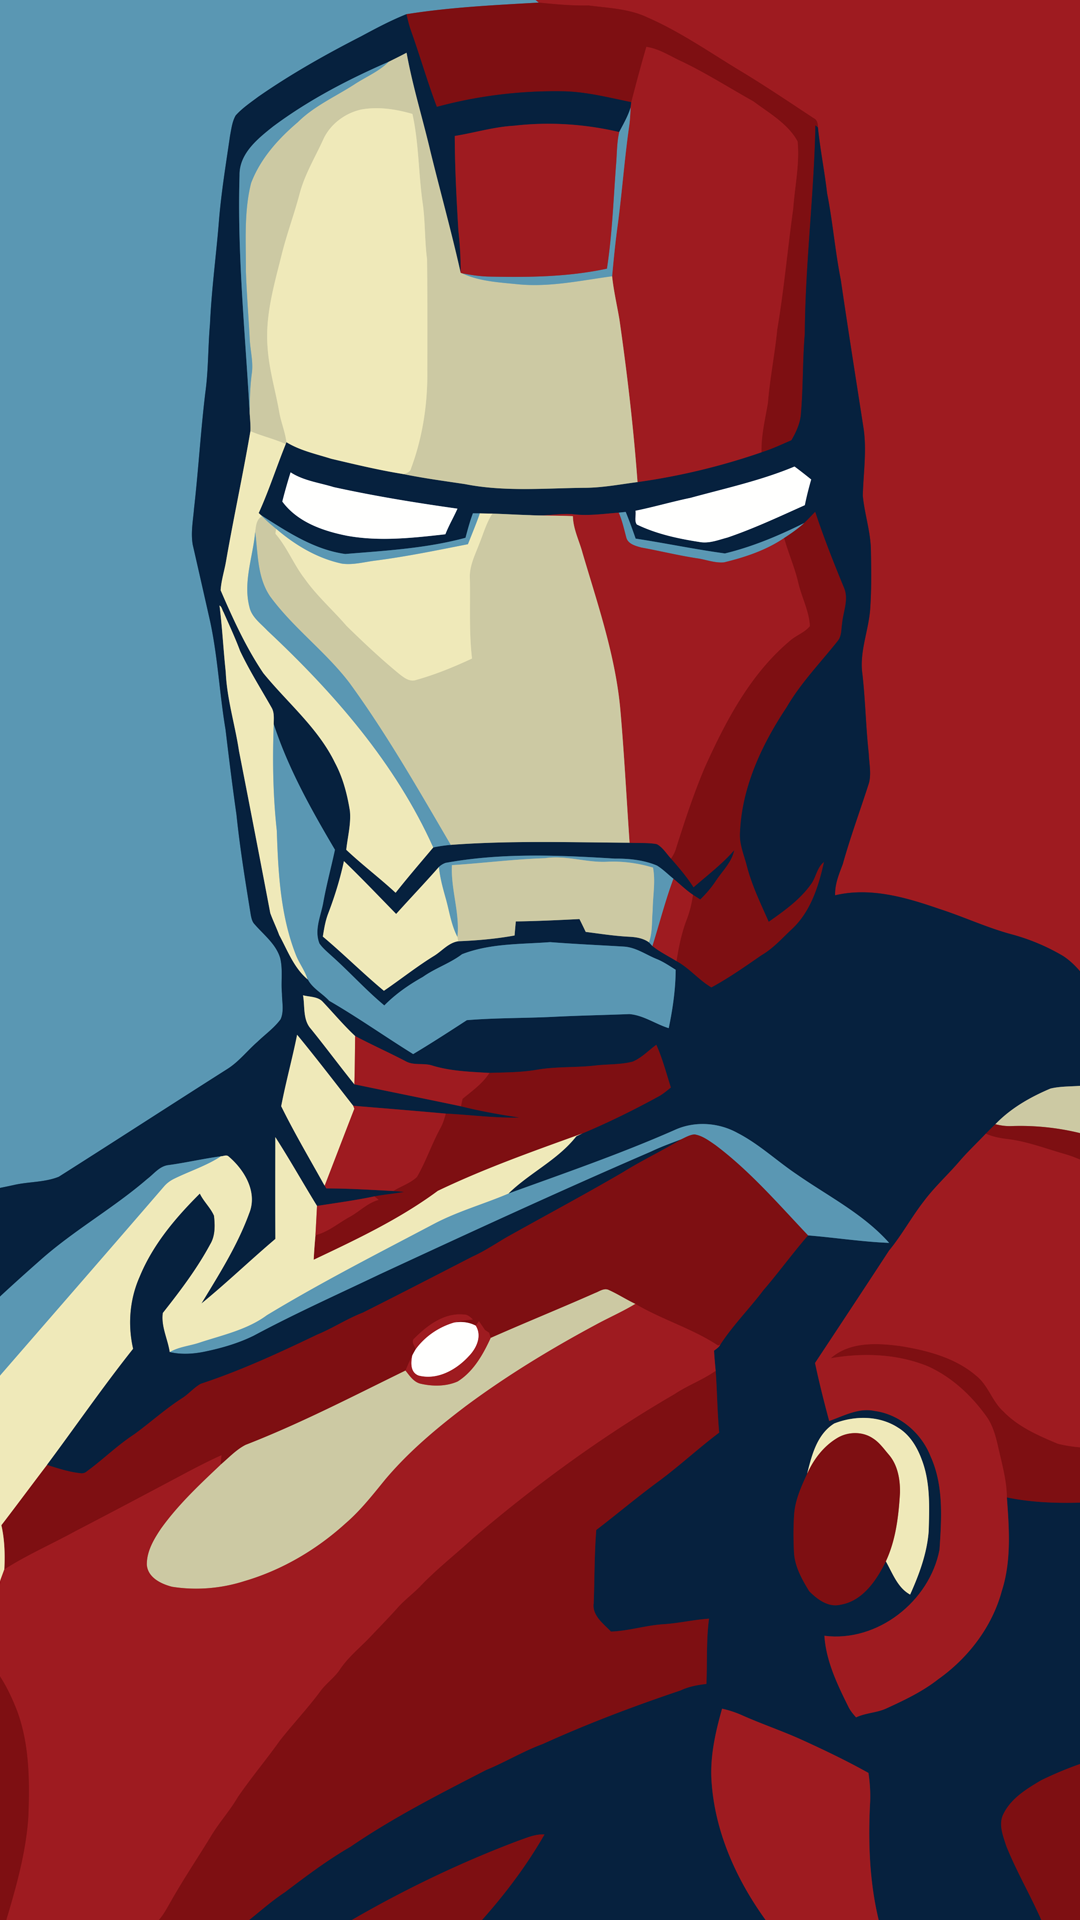 Pin By Stephanie Friderici On Iron Man Iron Man Wallpaper Man